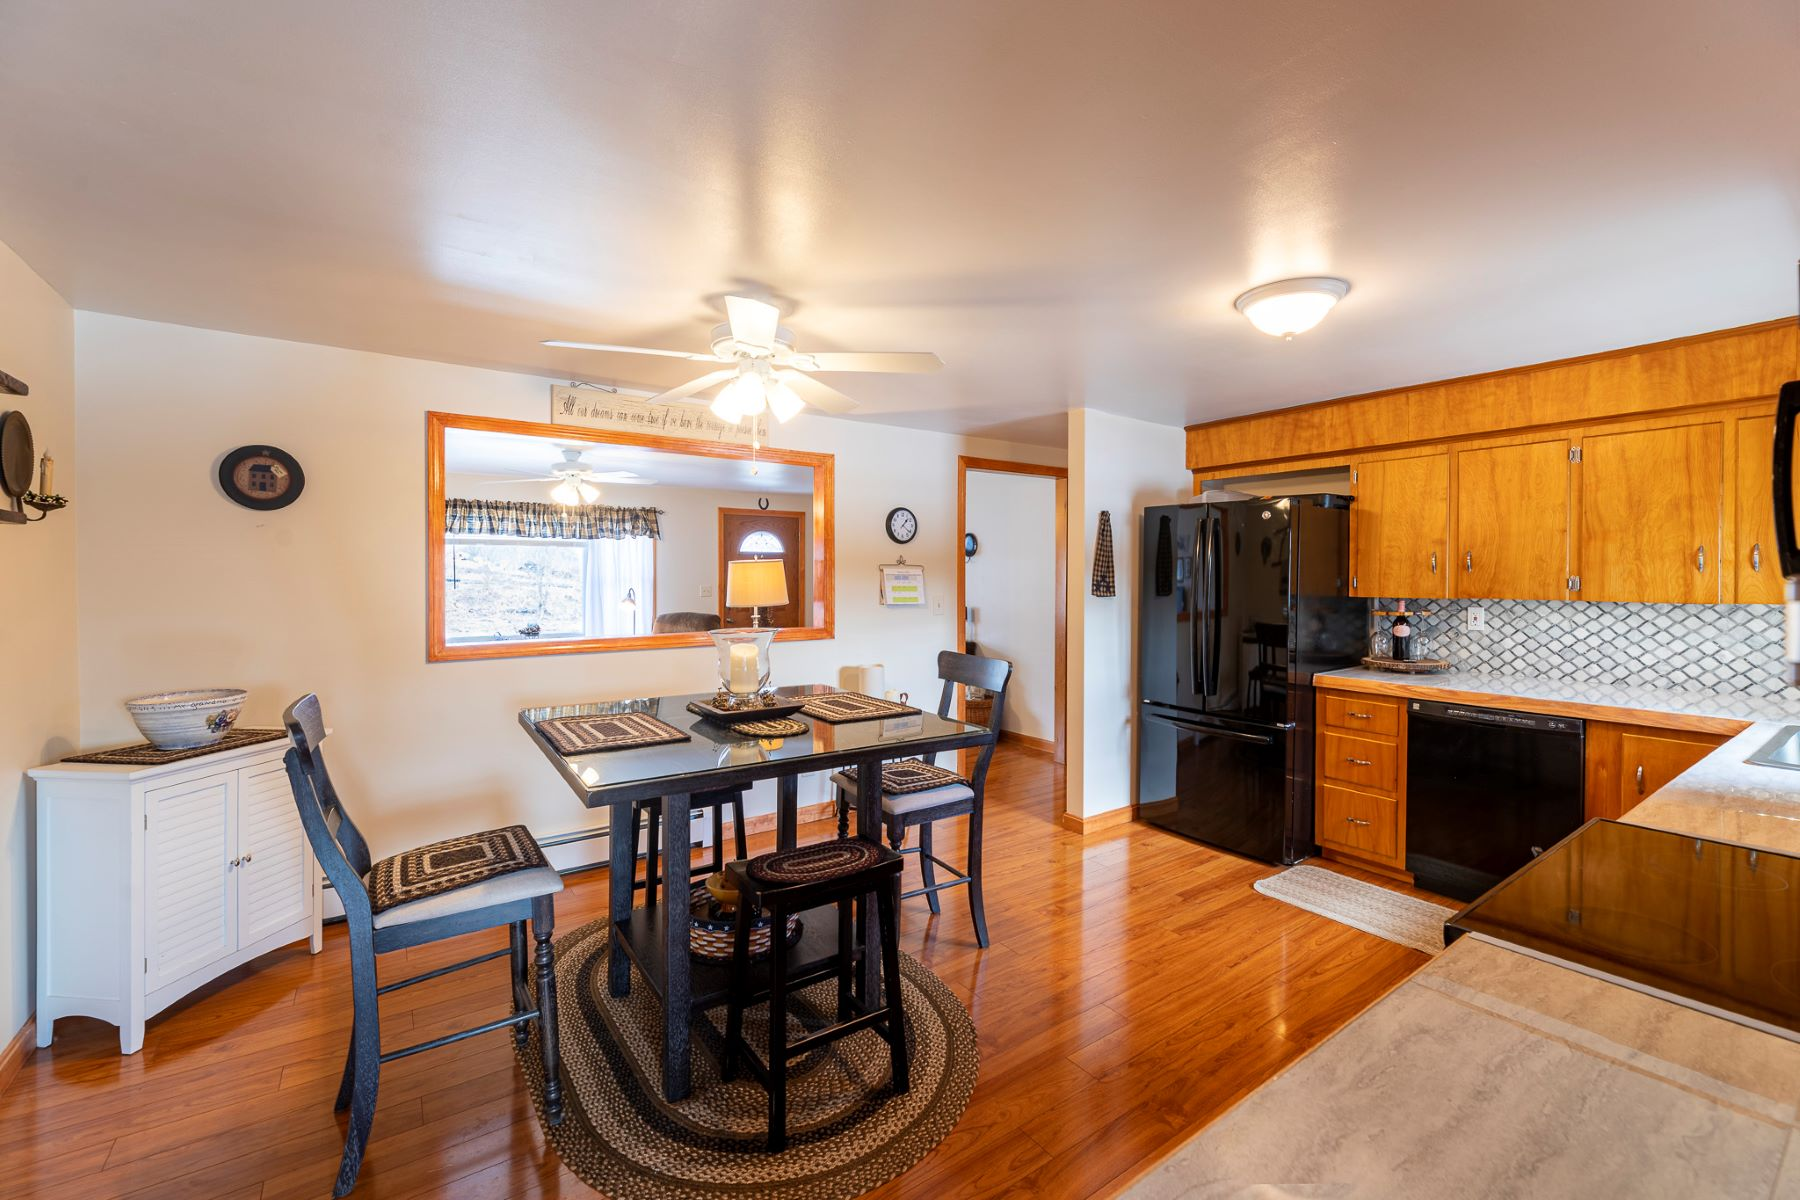 Single Family Homes for Active at Three Bedroom Ranch in Enfield 444 Us Route 4 Enfield, New Hampshire 03748 United States